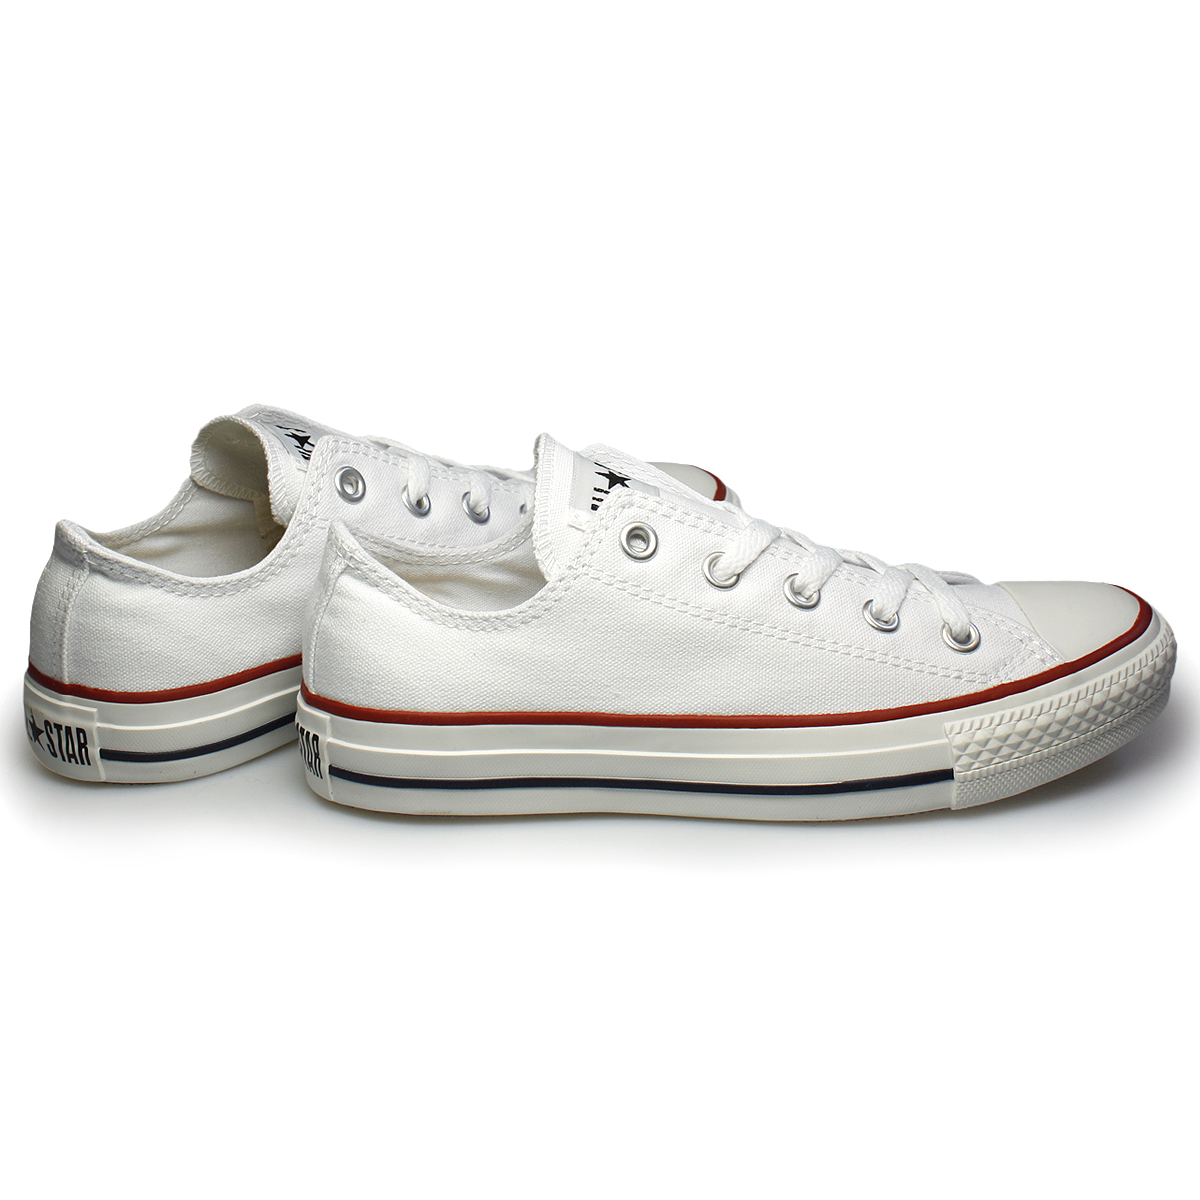 Converse Lo Men Women White Canvas Trainers Sneakers Shoes ...